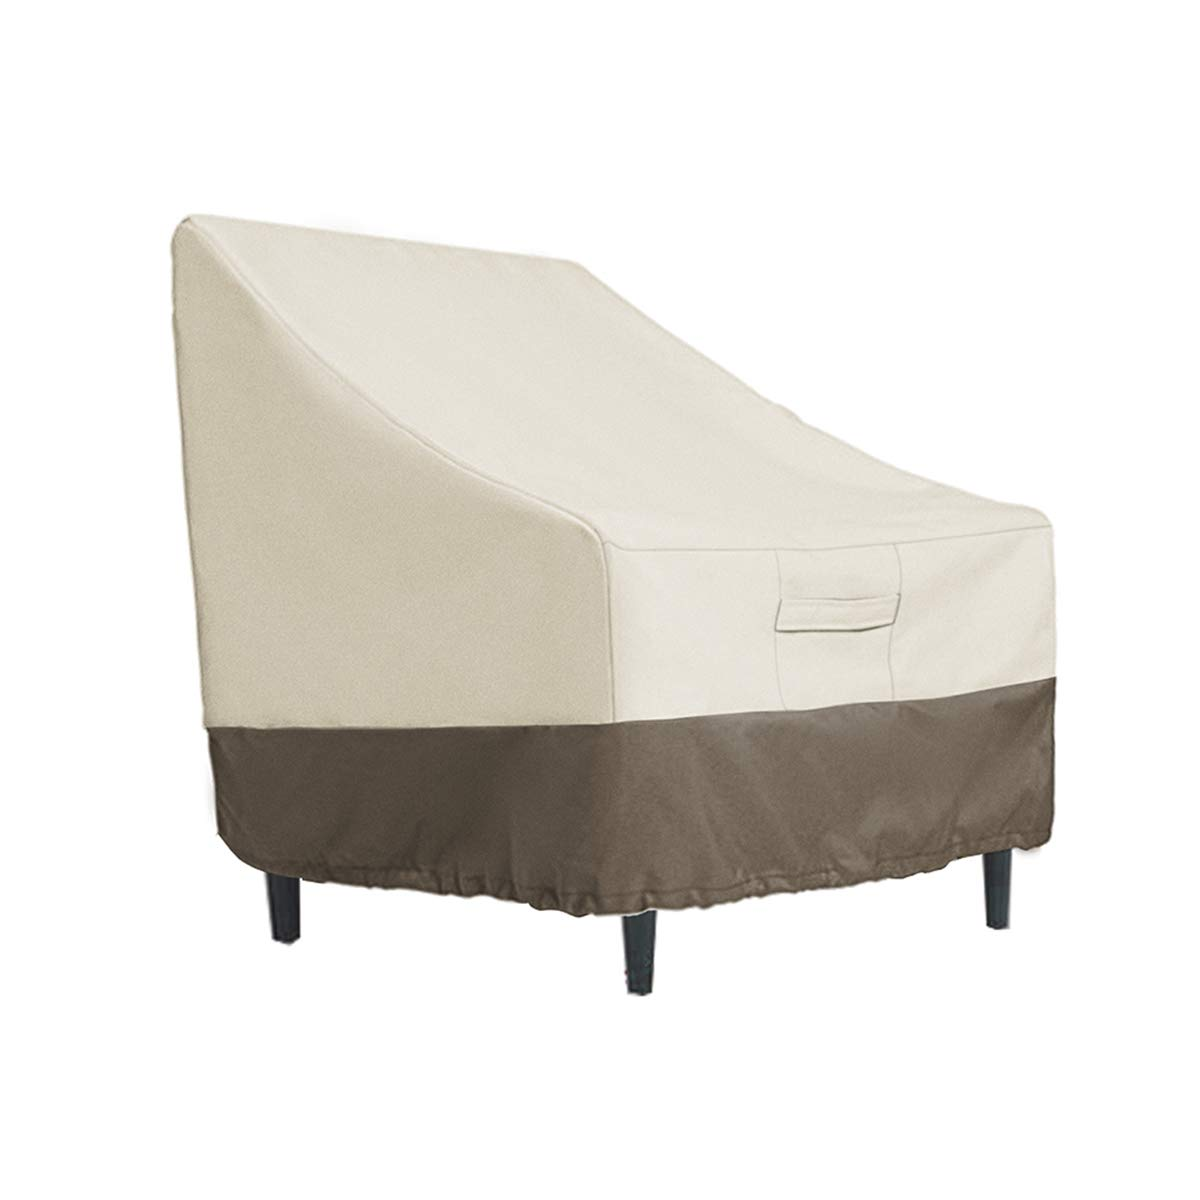 PHI VILLA Patio Lounge Chair/Club Chair Cover, Durable Waterproof Outdoor Furniture Cover, Large, L36 x D39 x H31